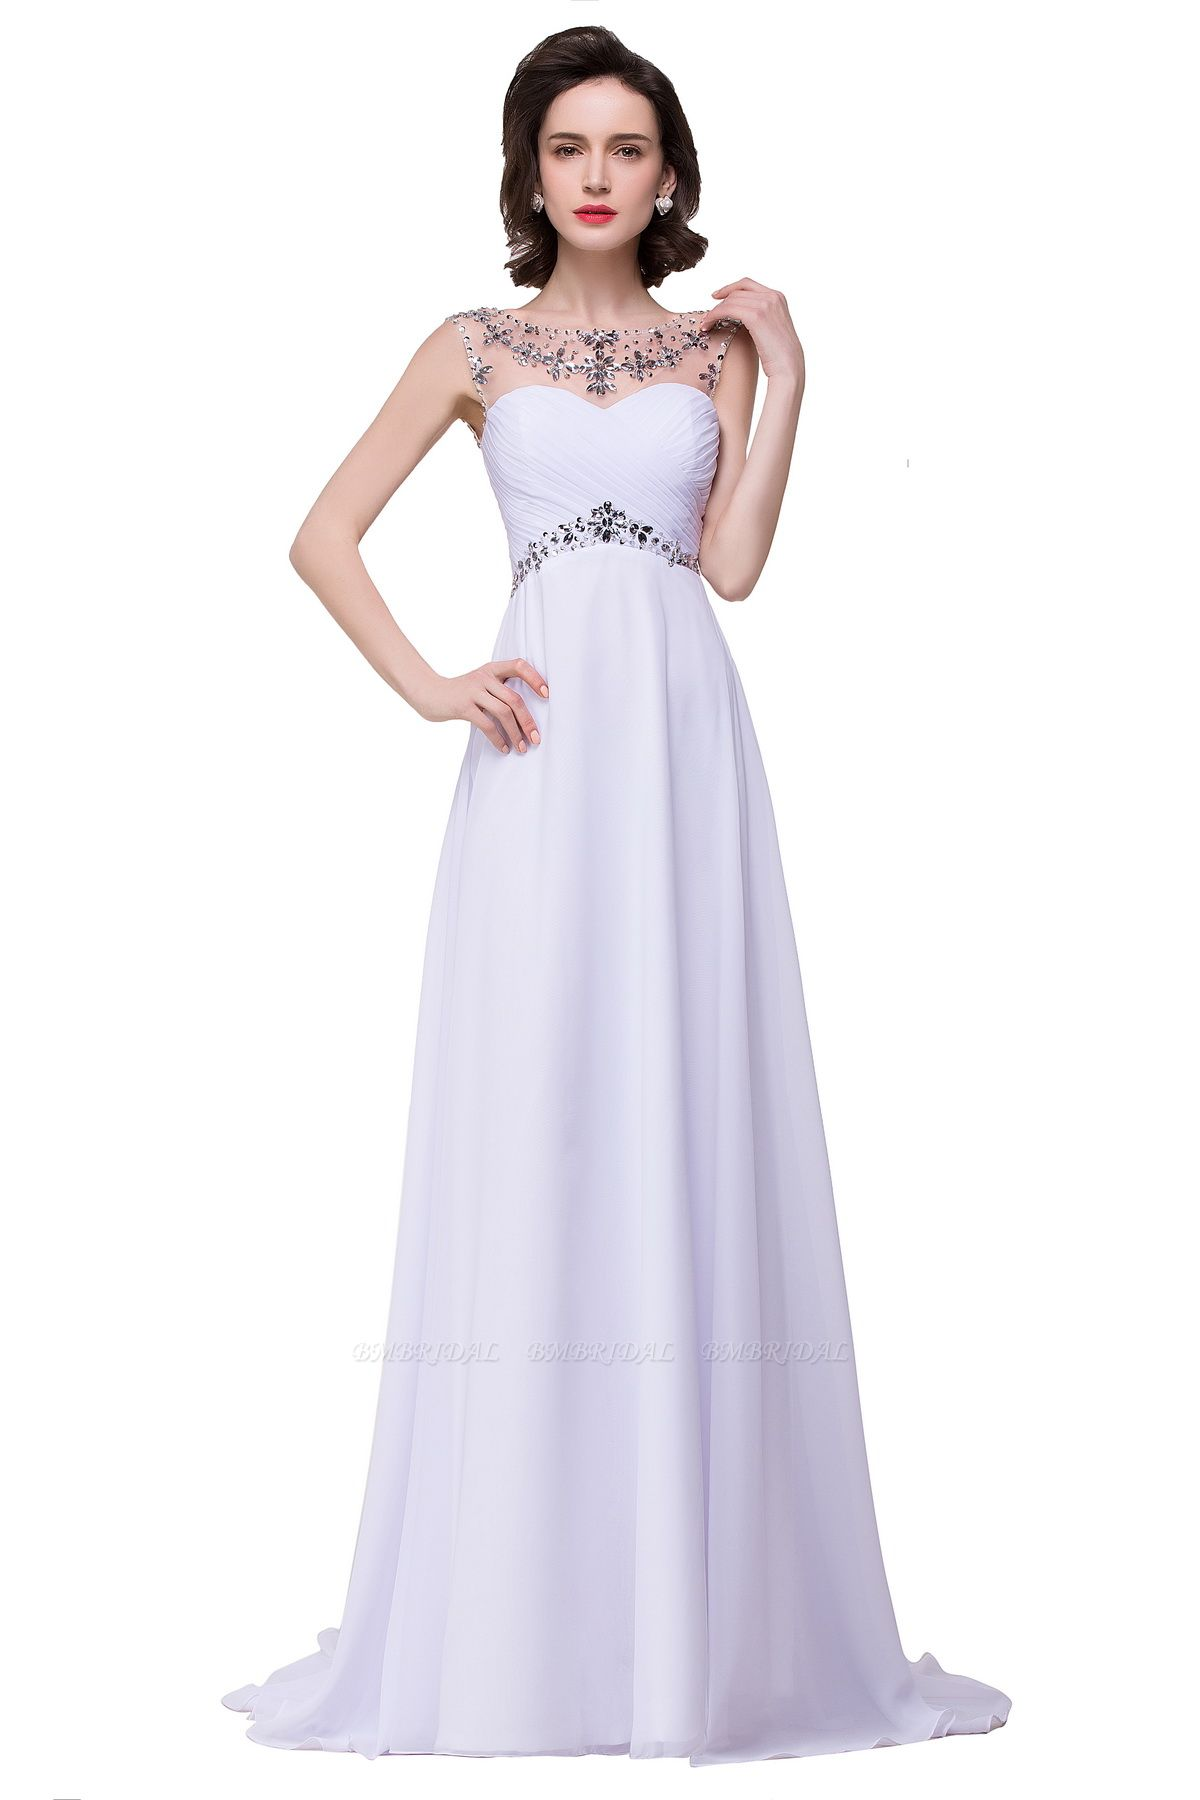 BMbridal A-line Sweetheart Chiffon Evening Dress With Crystal